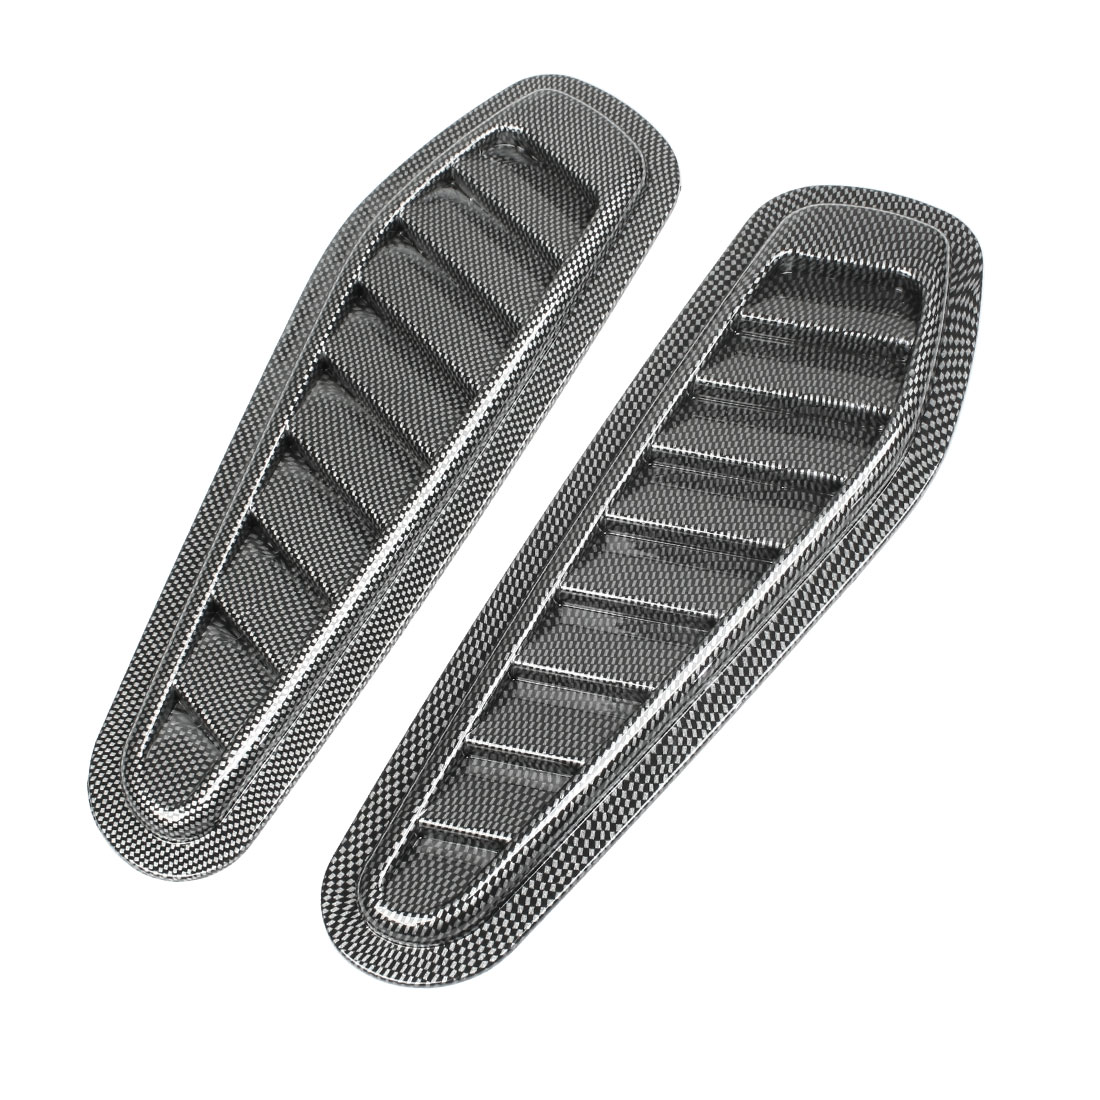 Check Pattern Car Engine Hood Air Scoop Vent Side Fender Cover Decor 2 Pcs